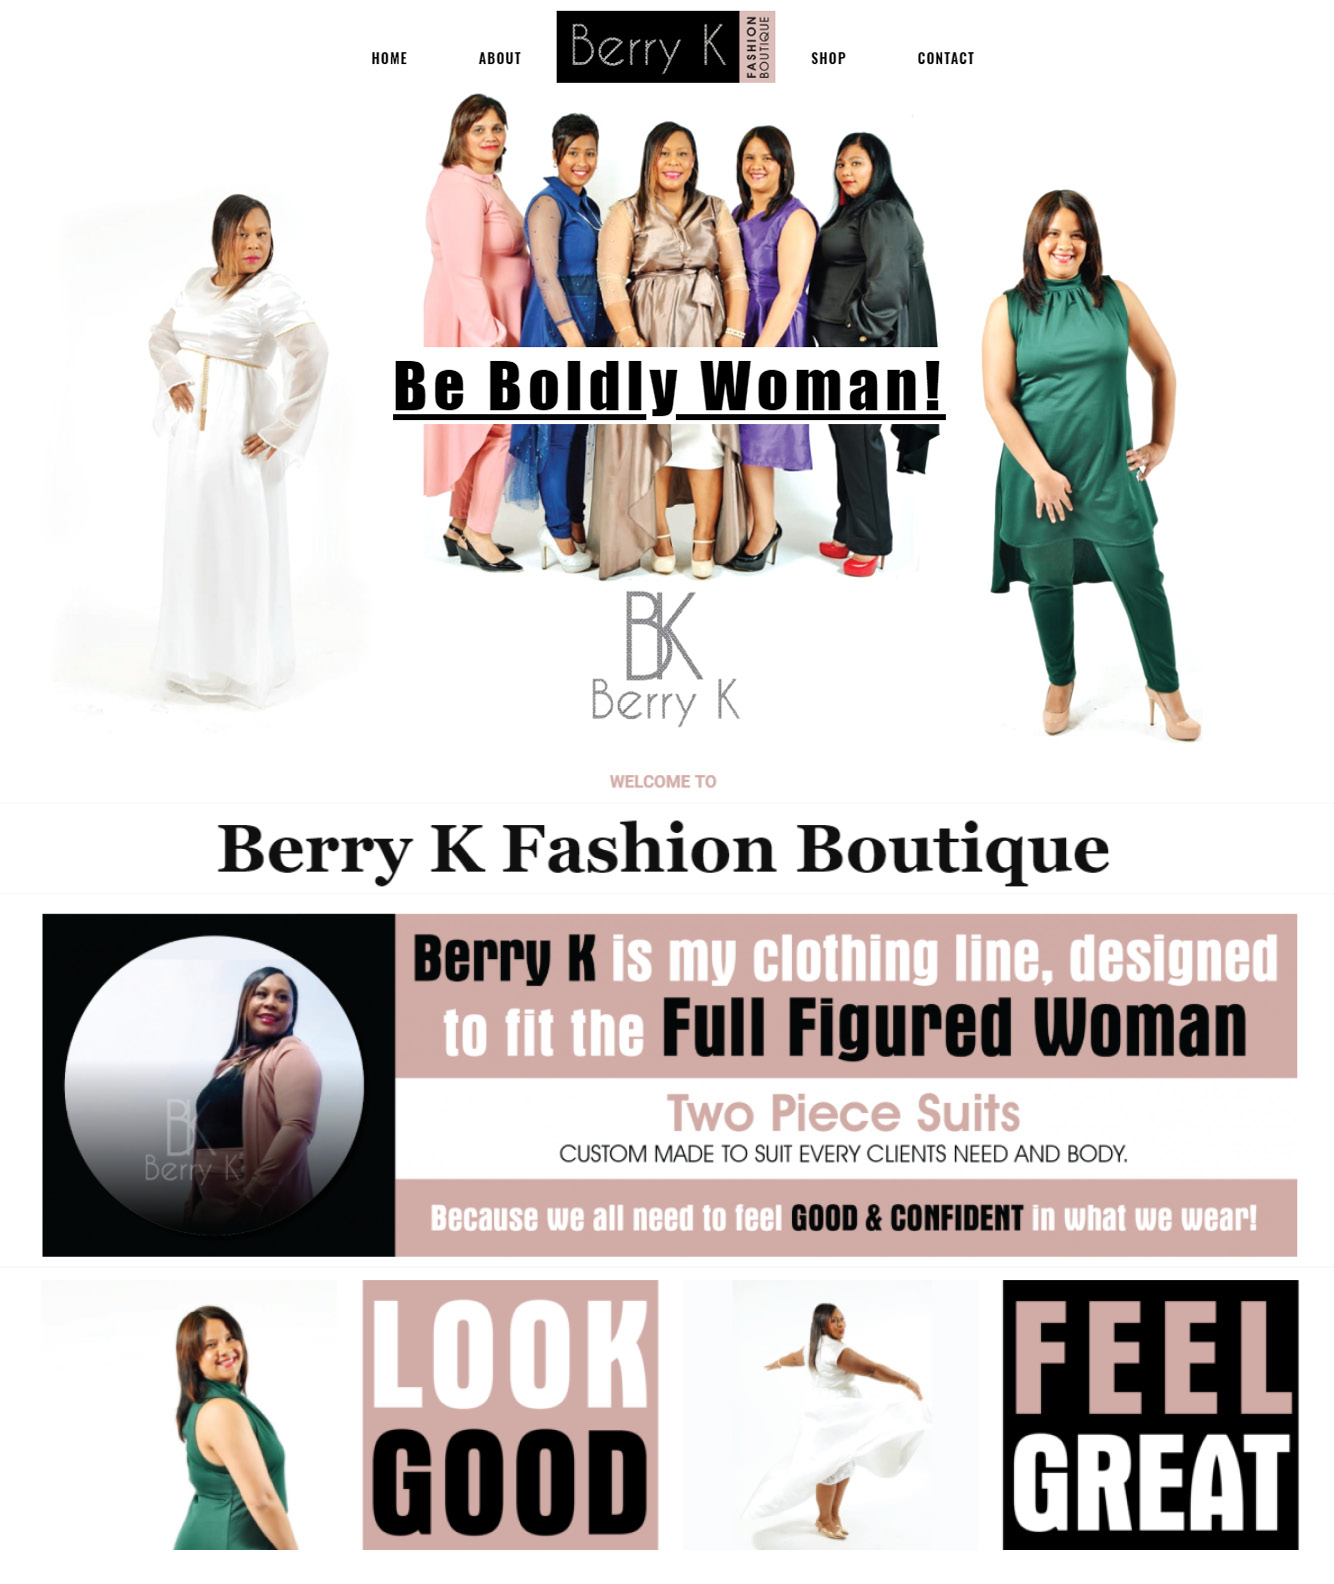 Berry K Website Design